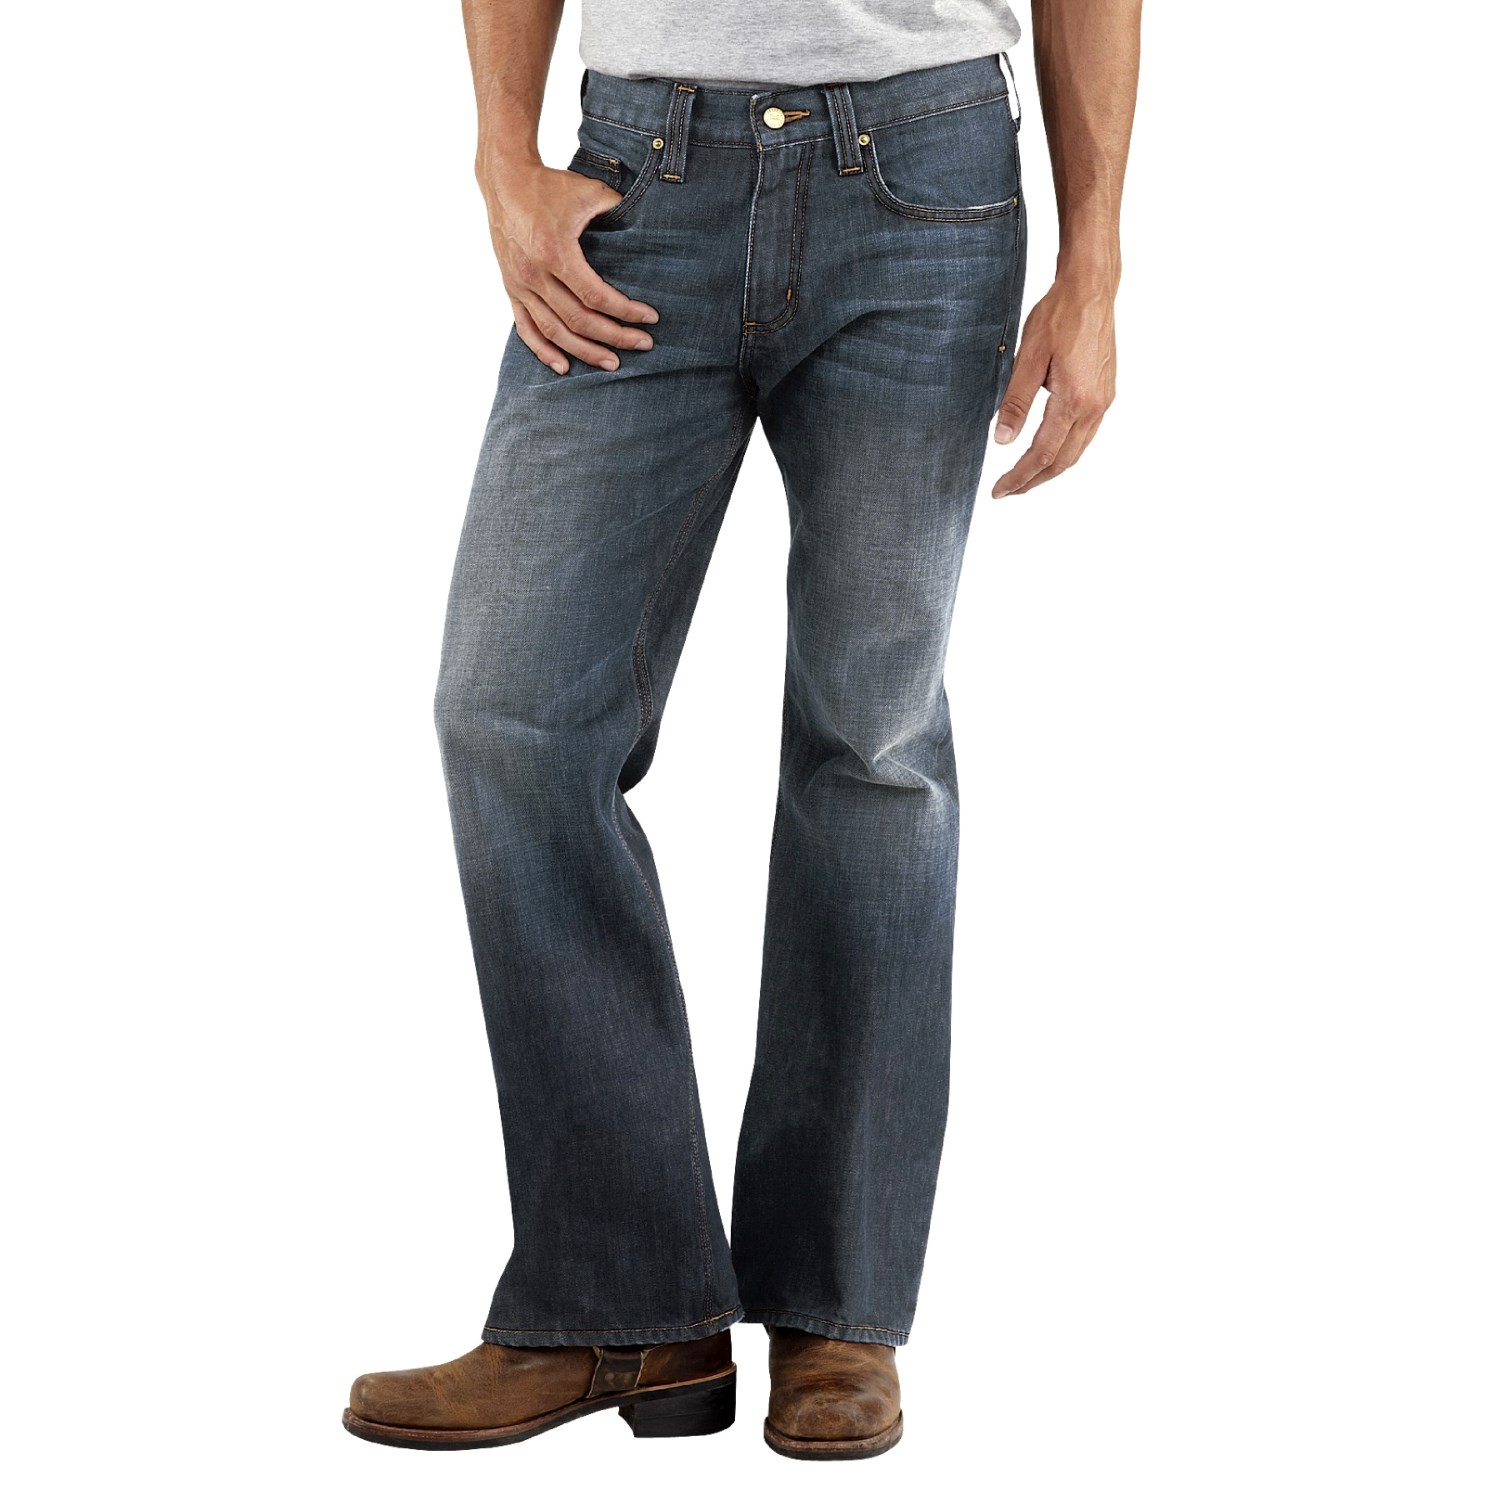 Relaxed Fit Bootcut Jeans For Men | Bbg Clothing